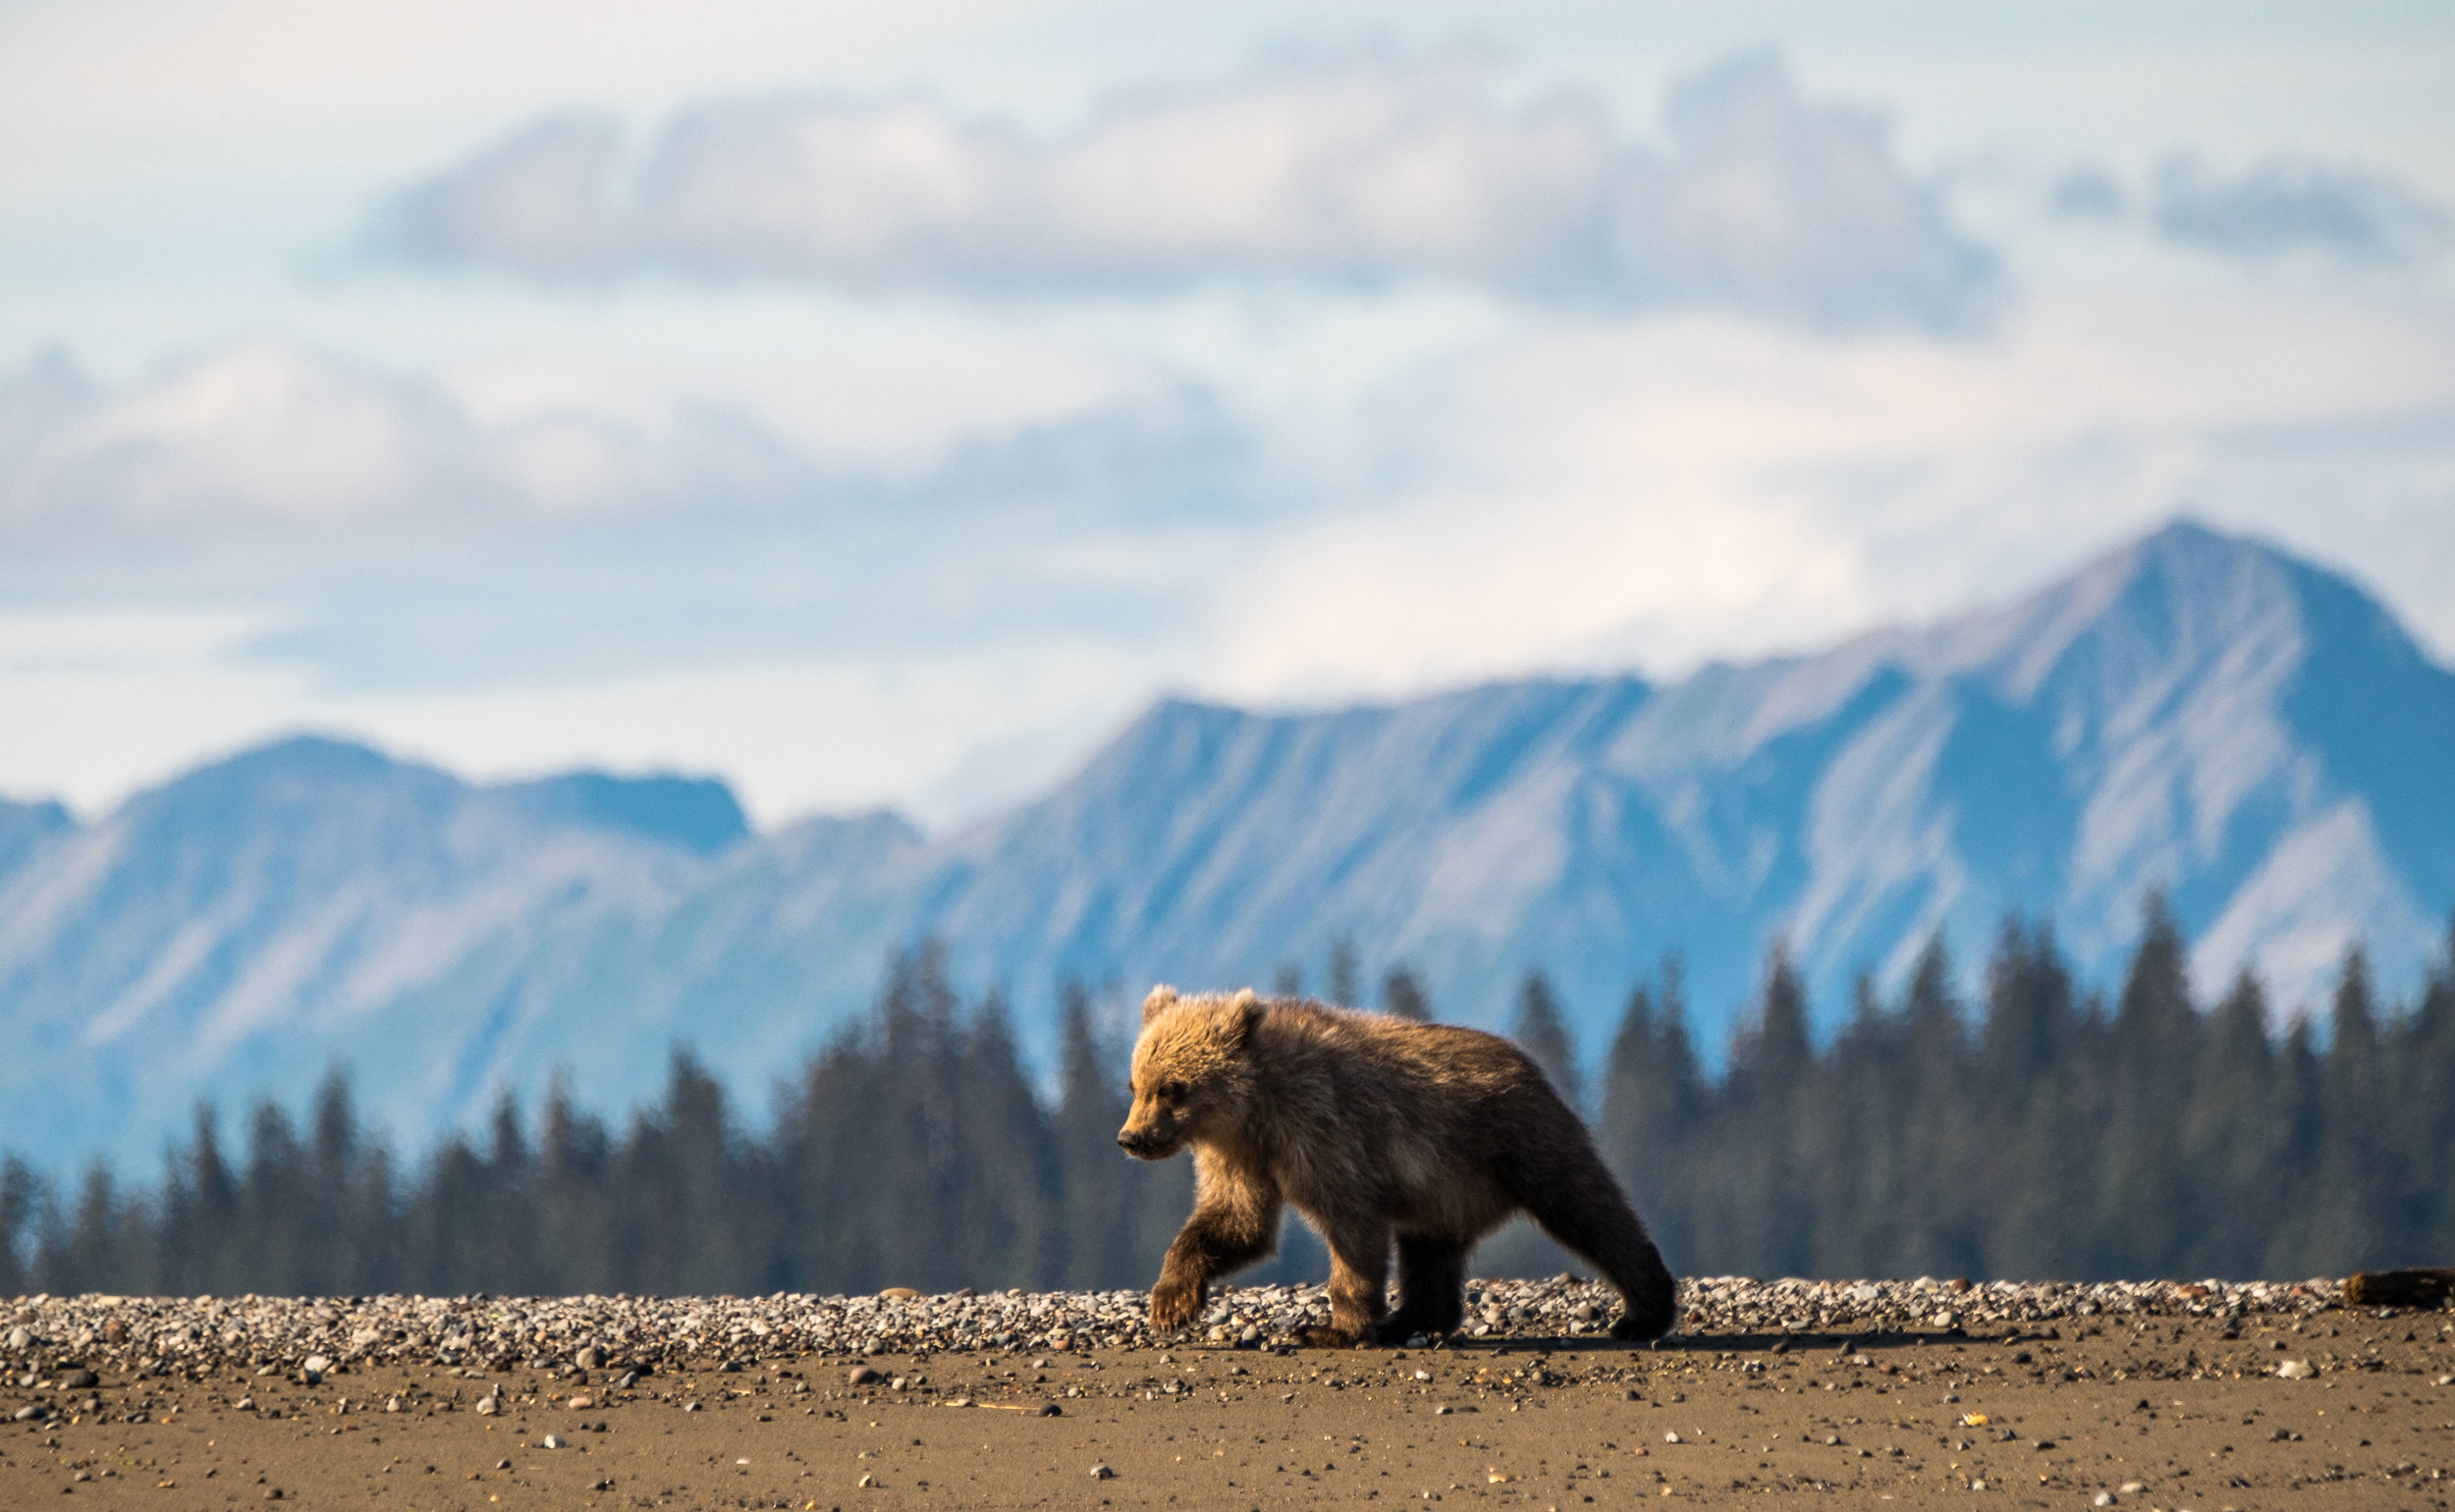 A cub and the amazing wilderness backdrop of Lake Clark National Park.